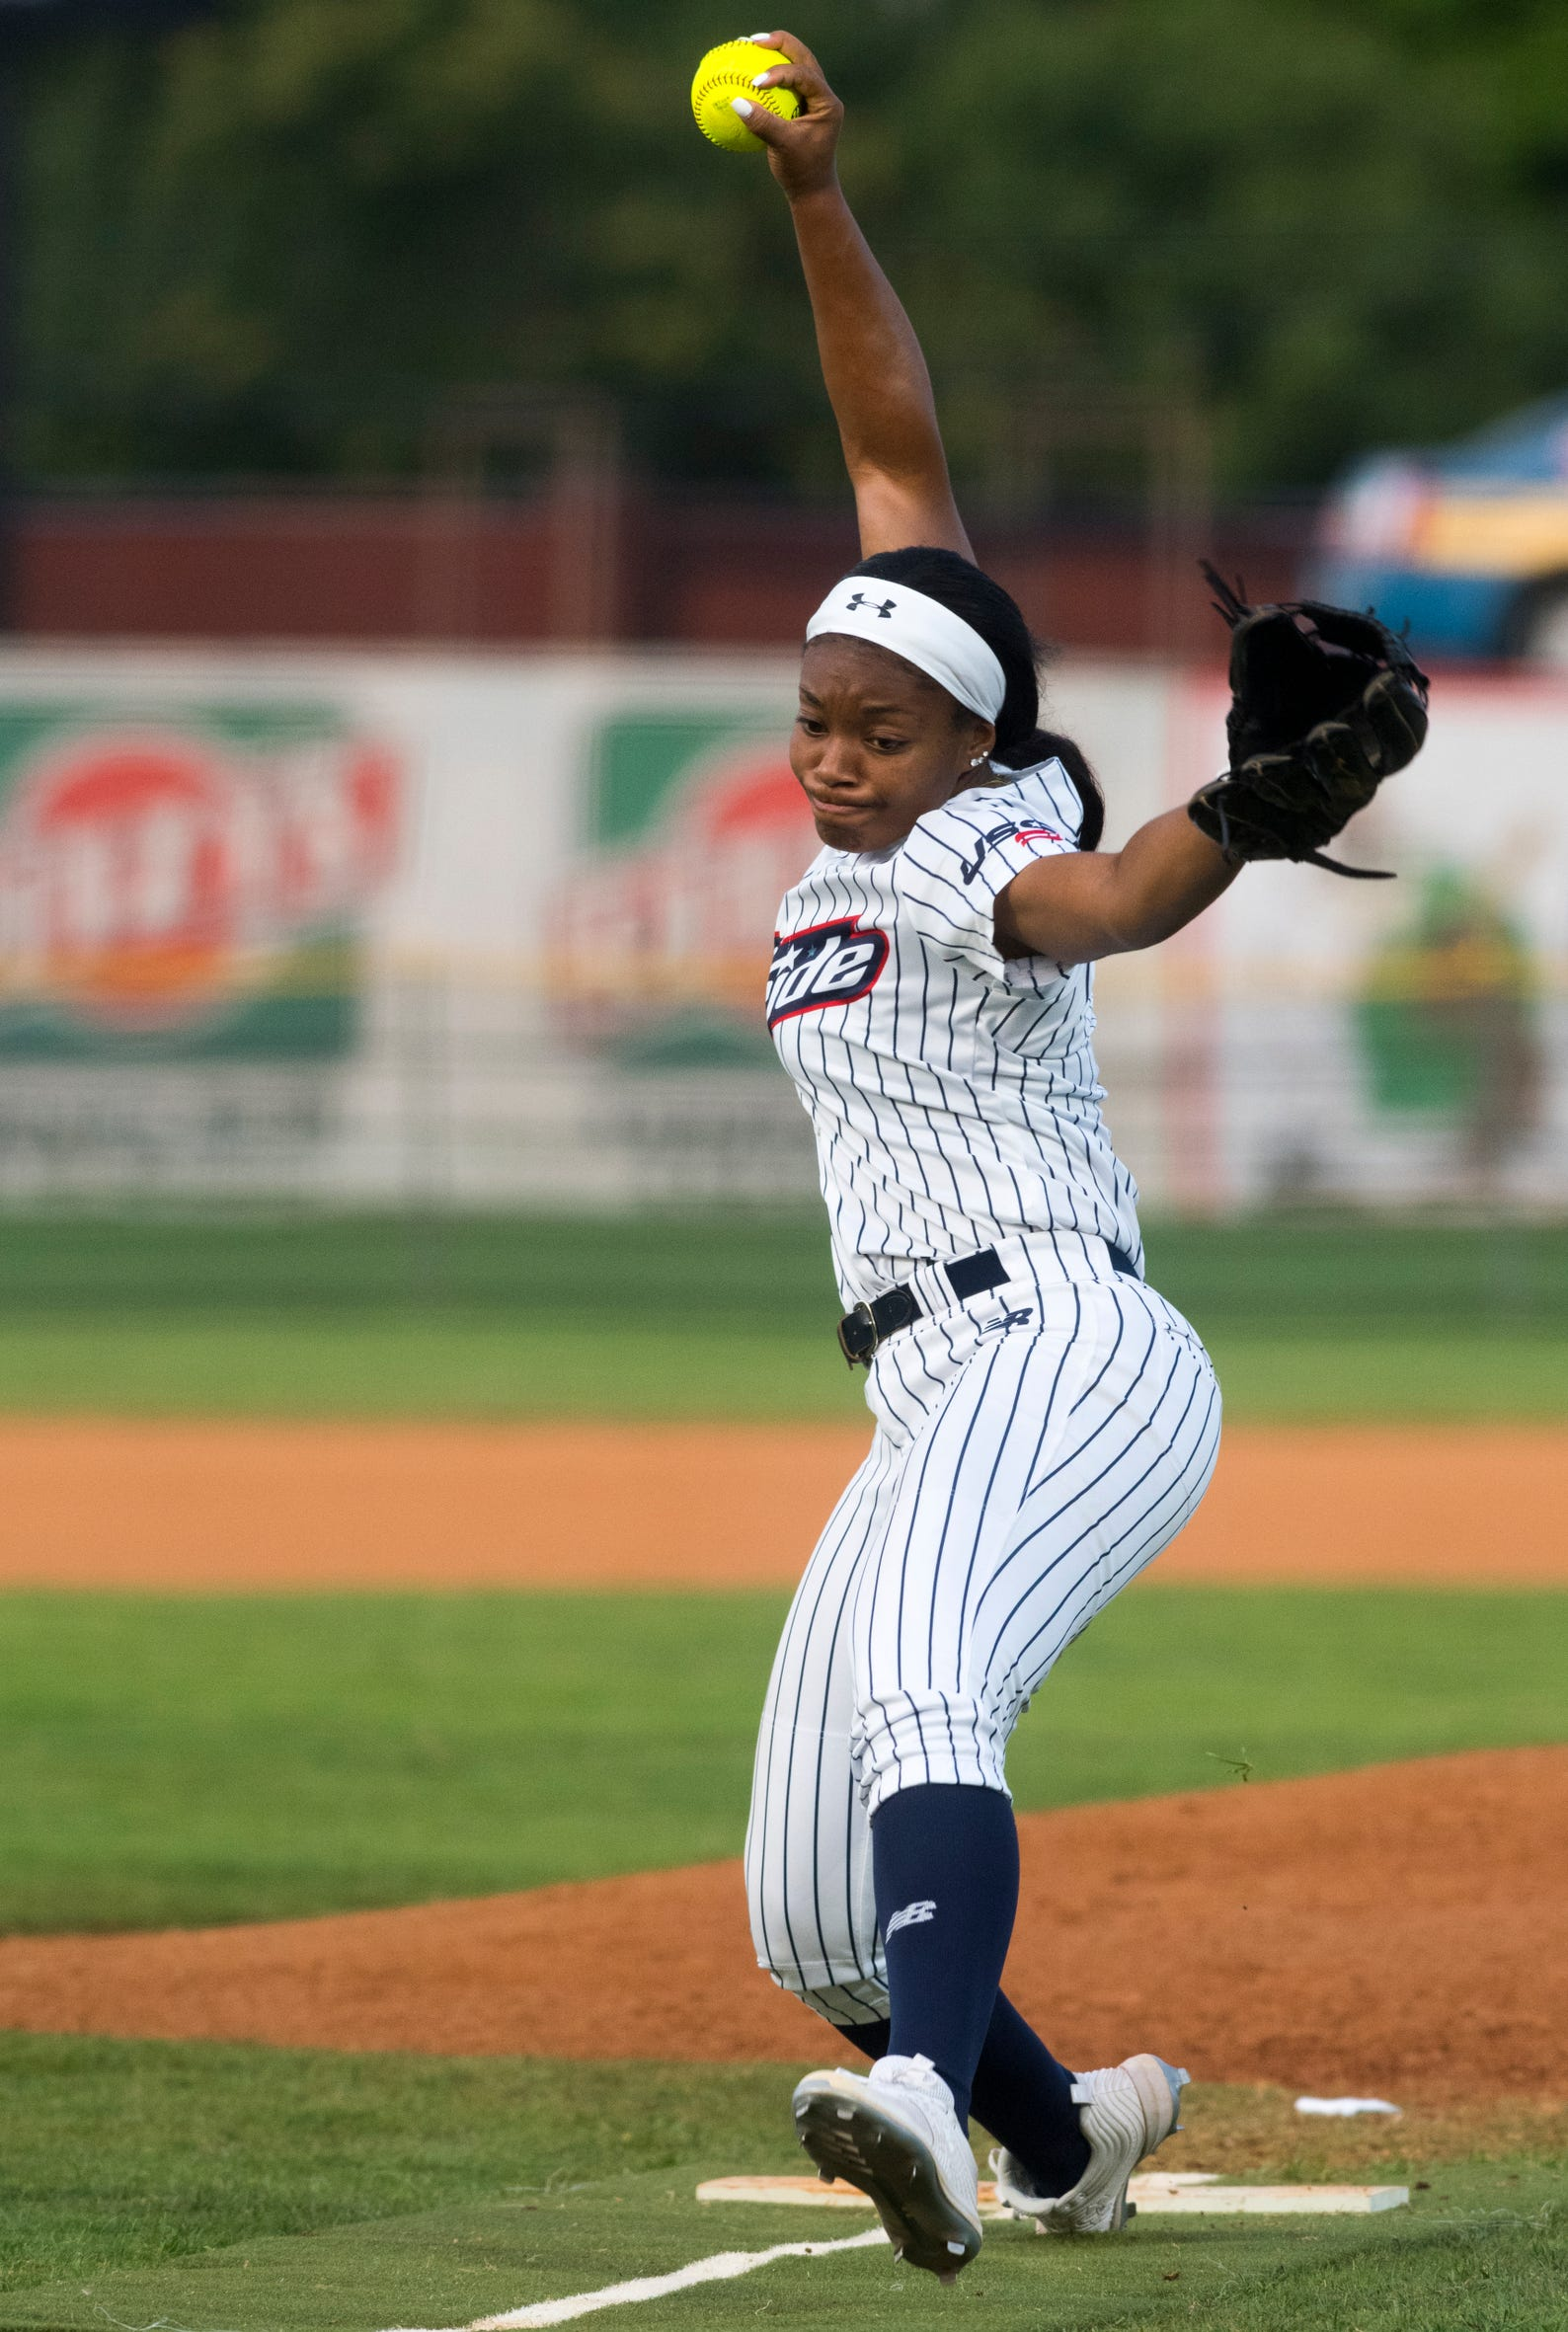 USSSA Pride's Odicci Alexander (1) pitches as the USSSA Pride takes on Team Florida in an exhibition game at Bosse Field in Evansville, Ind., Wednesday evening, July 14, 2021.